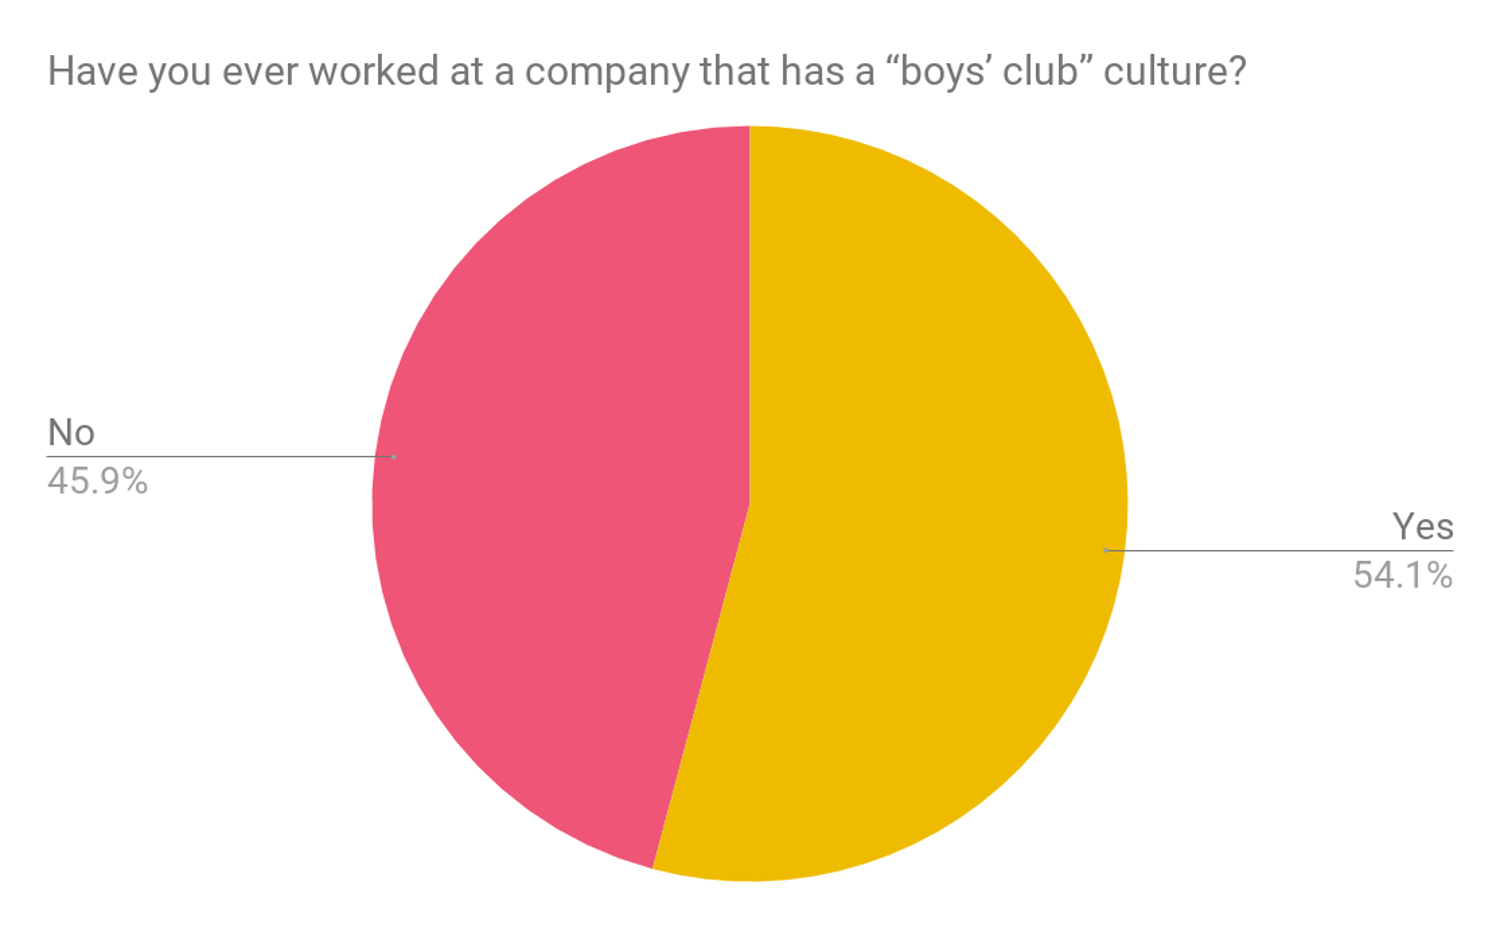 Boys club culture at work statistics